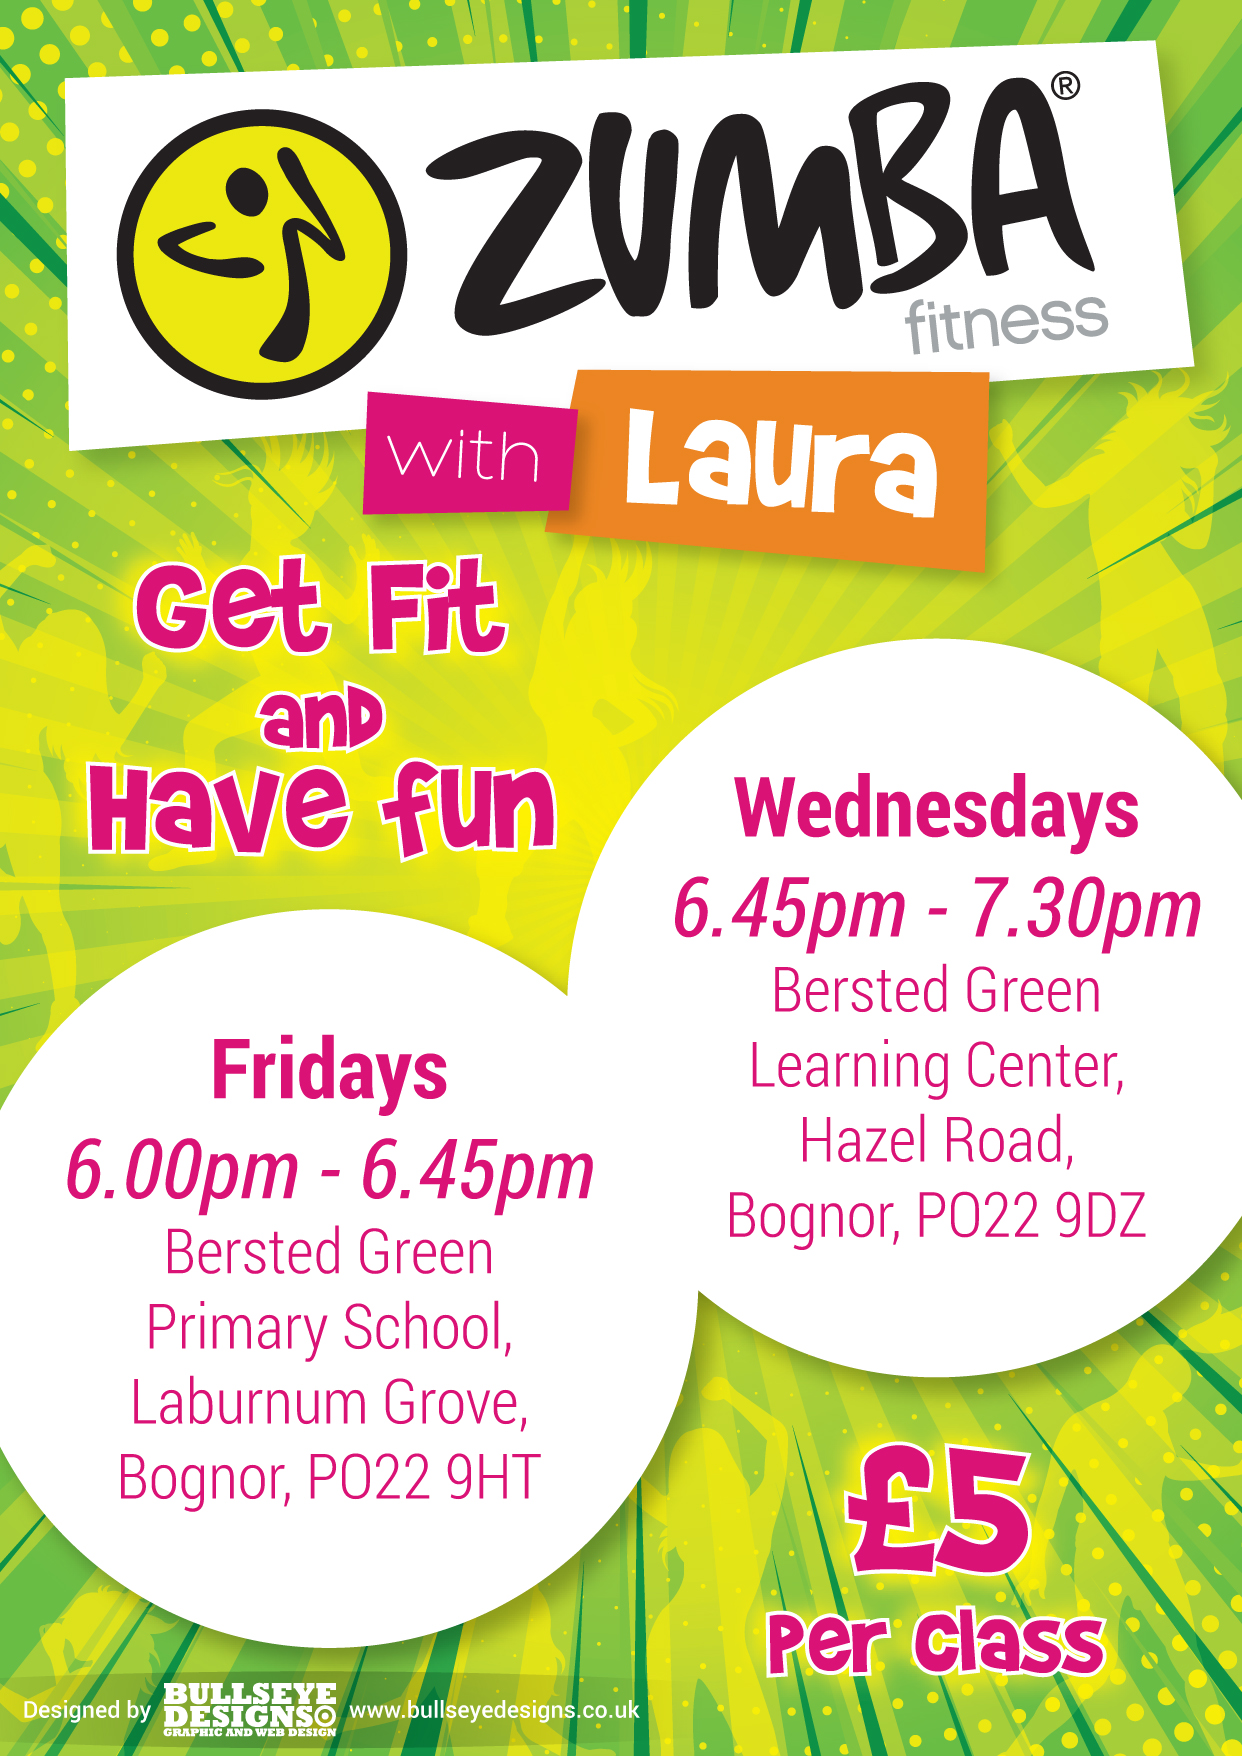 Zumba With Laura Leaflet